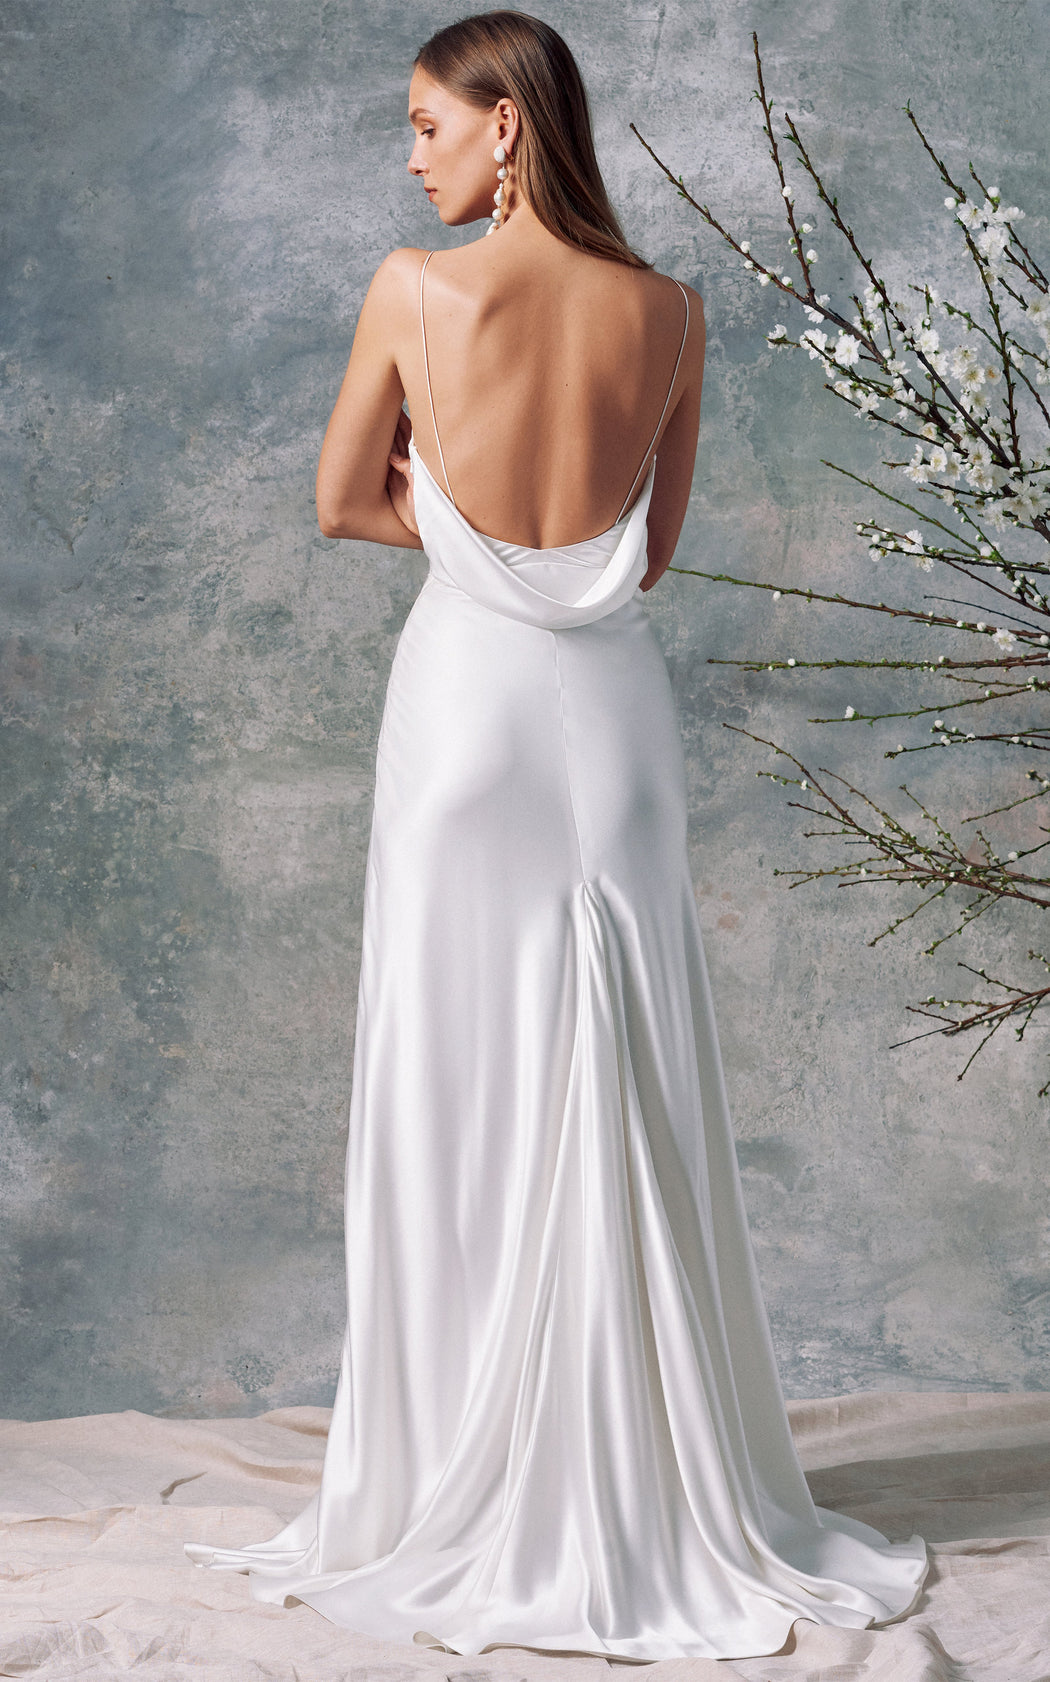 Vesta White Silk Dress